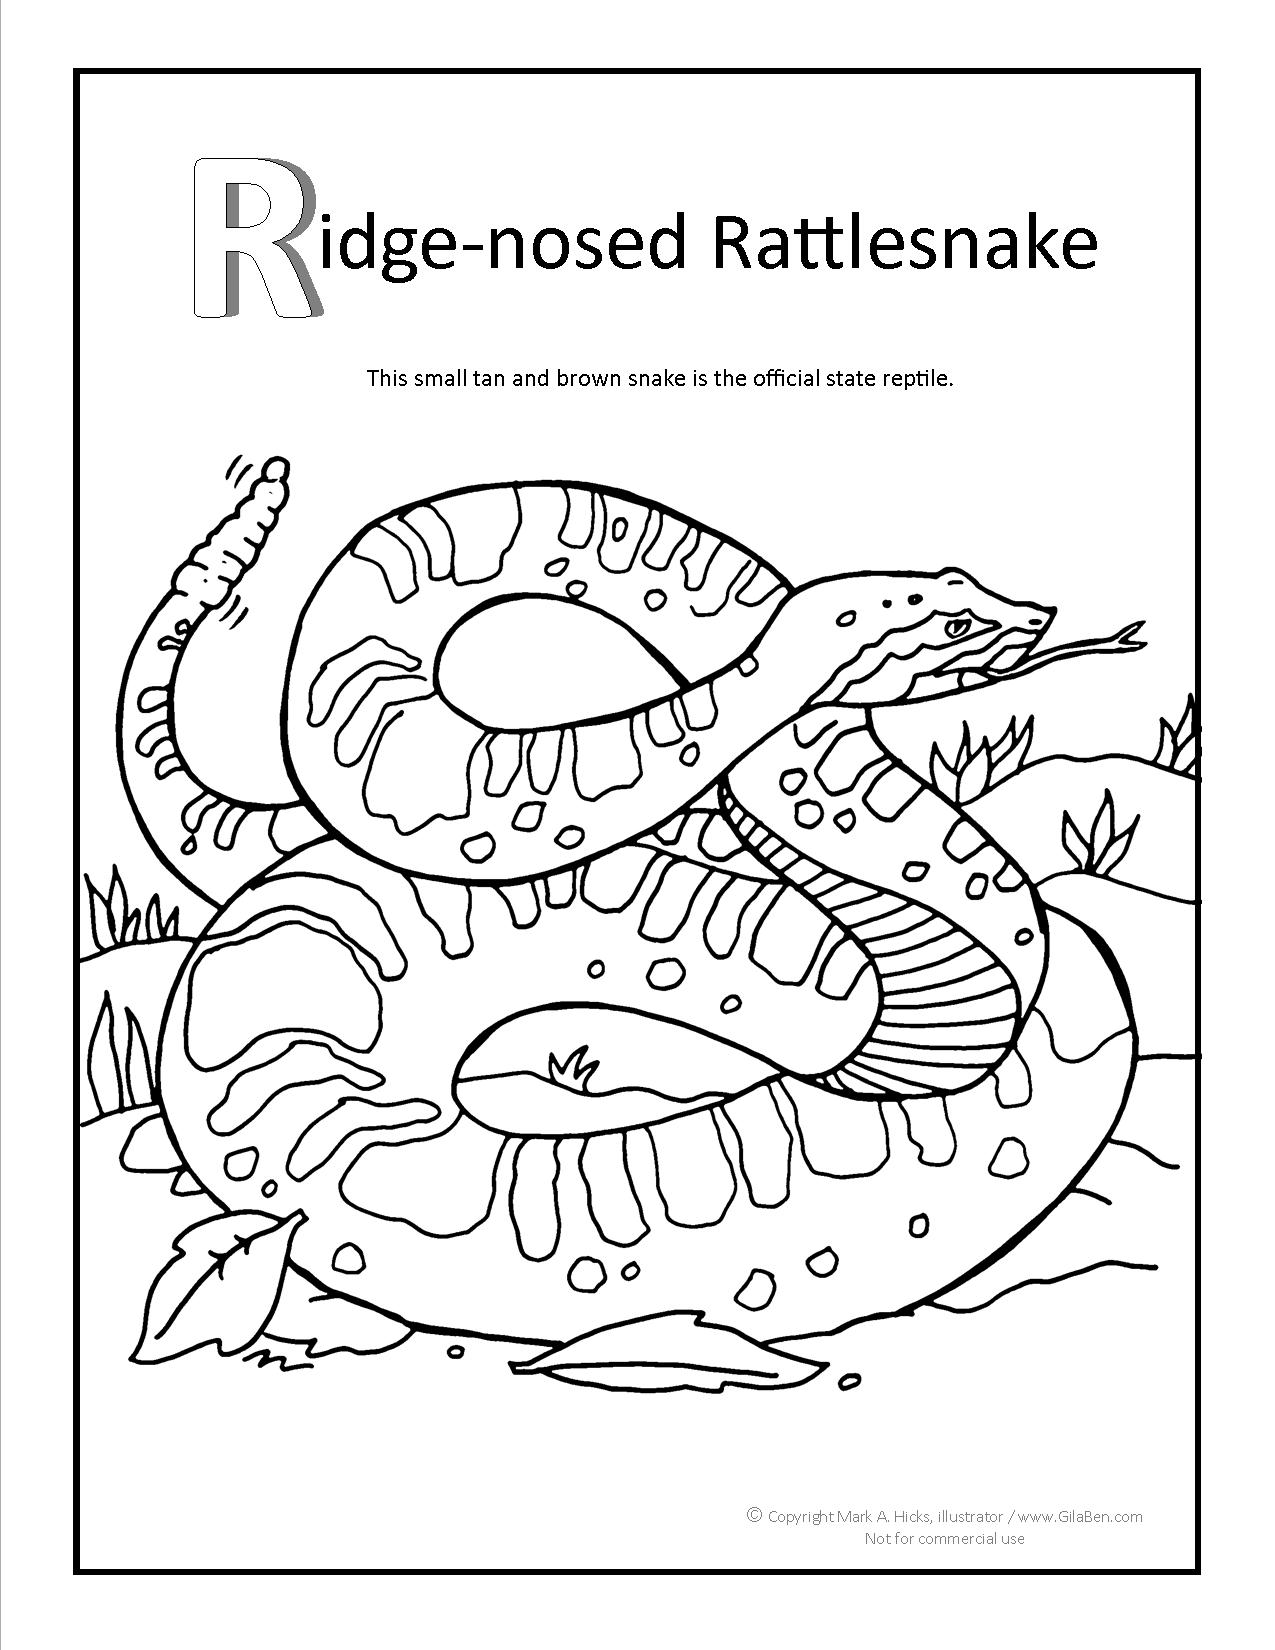 Ridge Nosed Rattlesnake Coloring Page